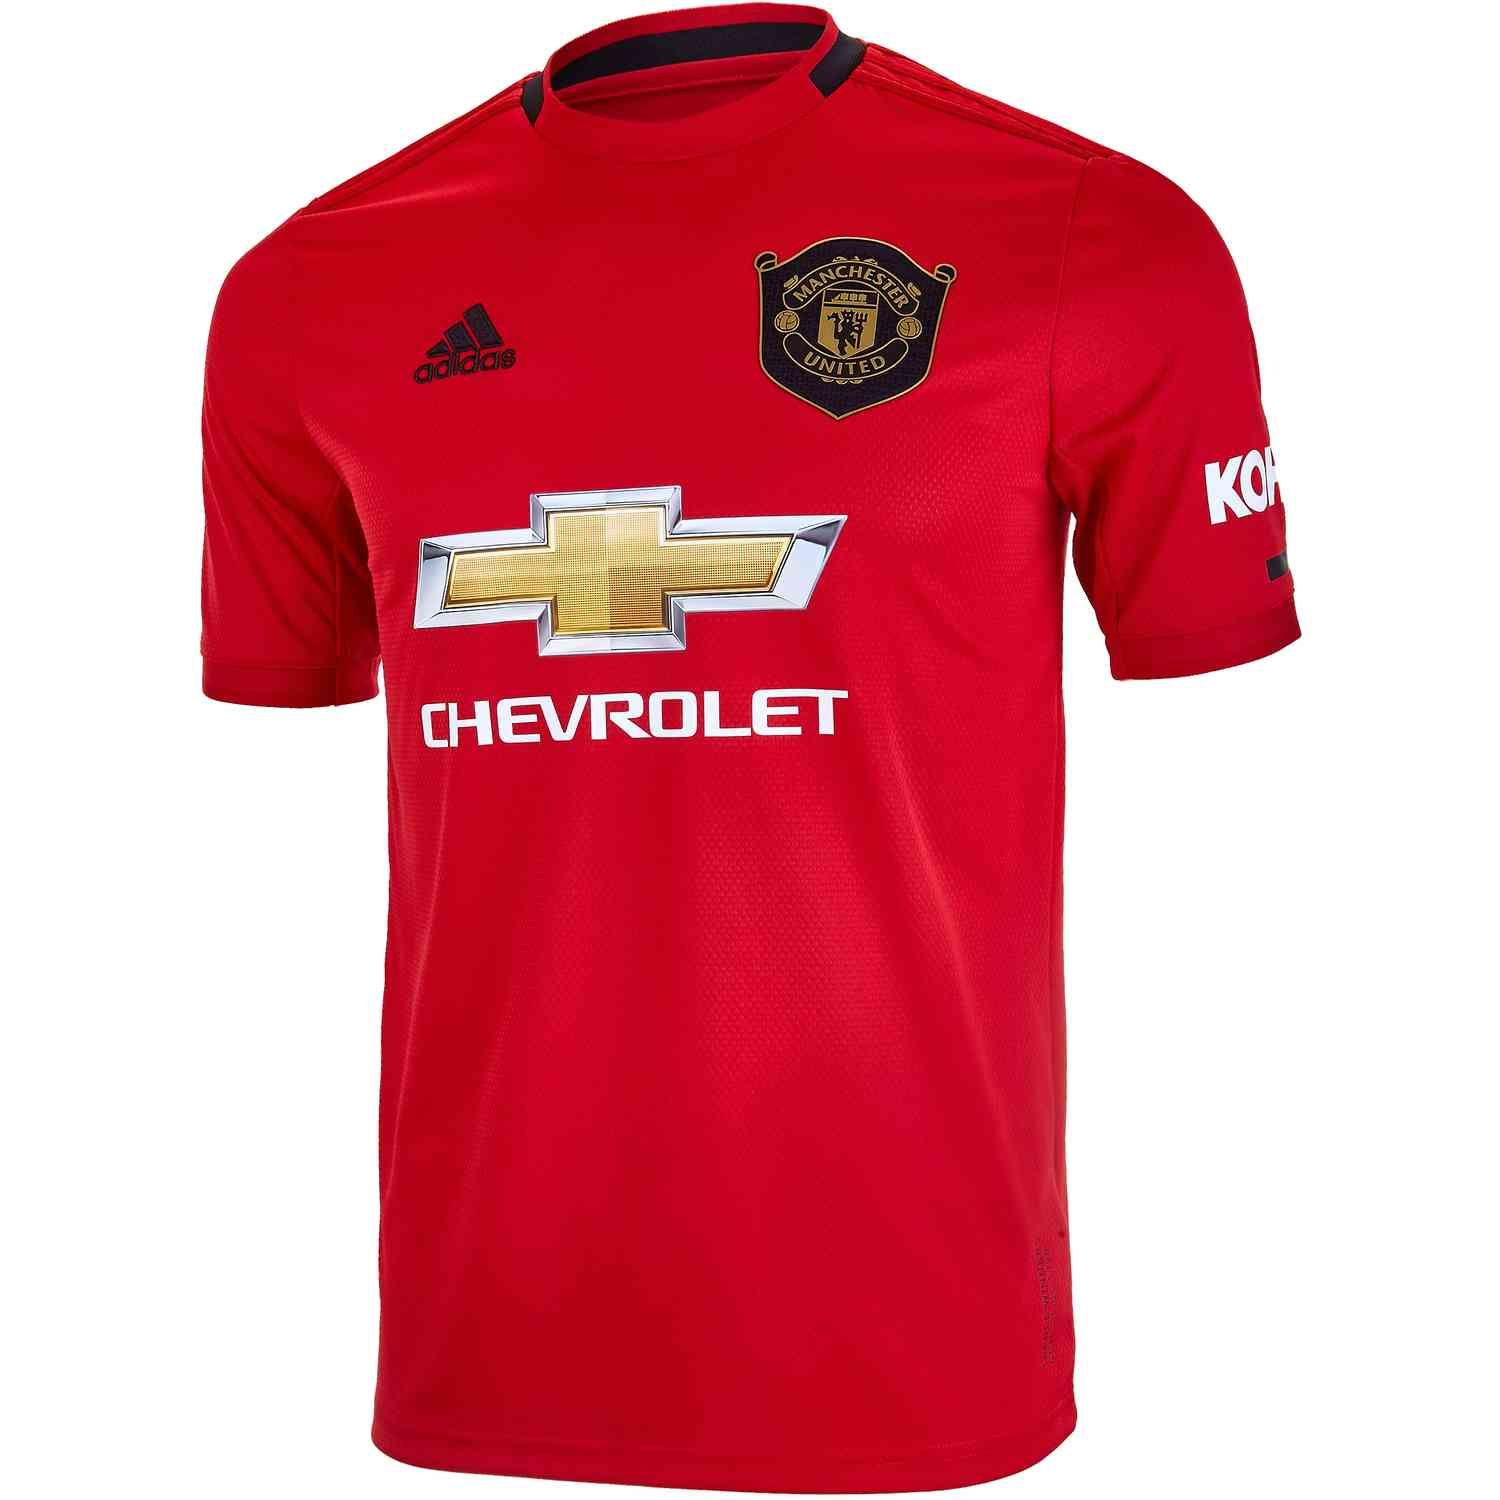 2019 20 Kids Adidas Manchester United Home Jersey Soccerpro Manchester United Jersey Design The Unit